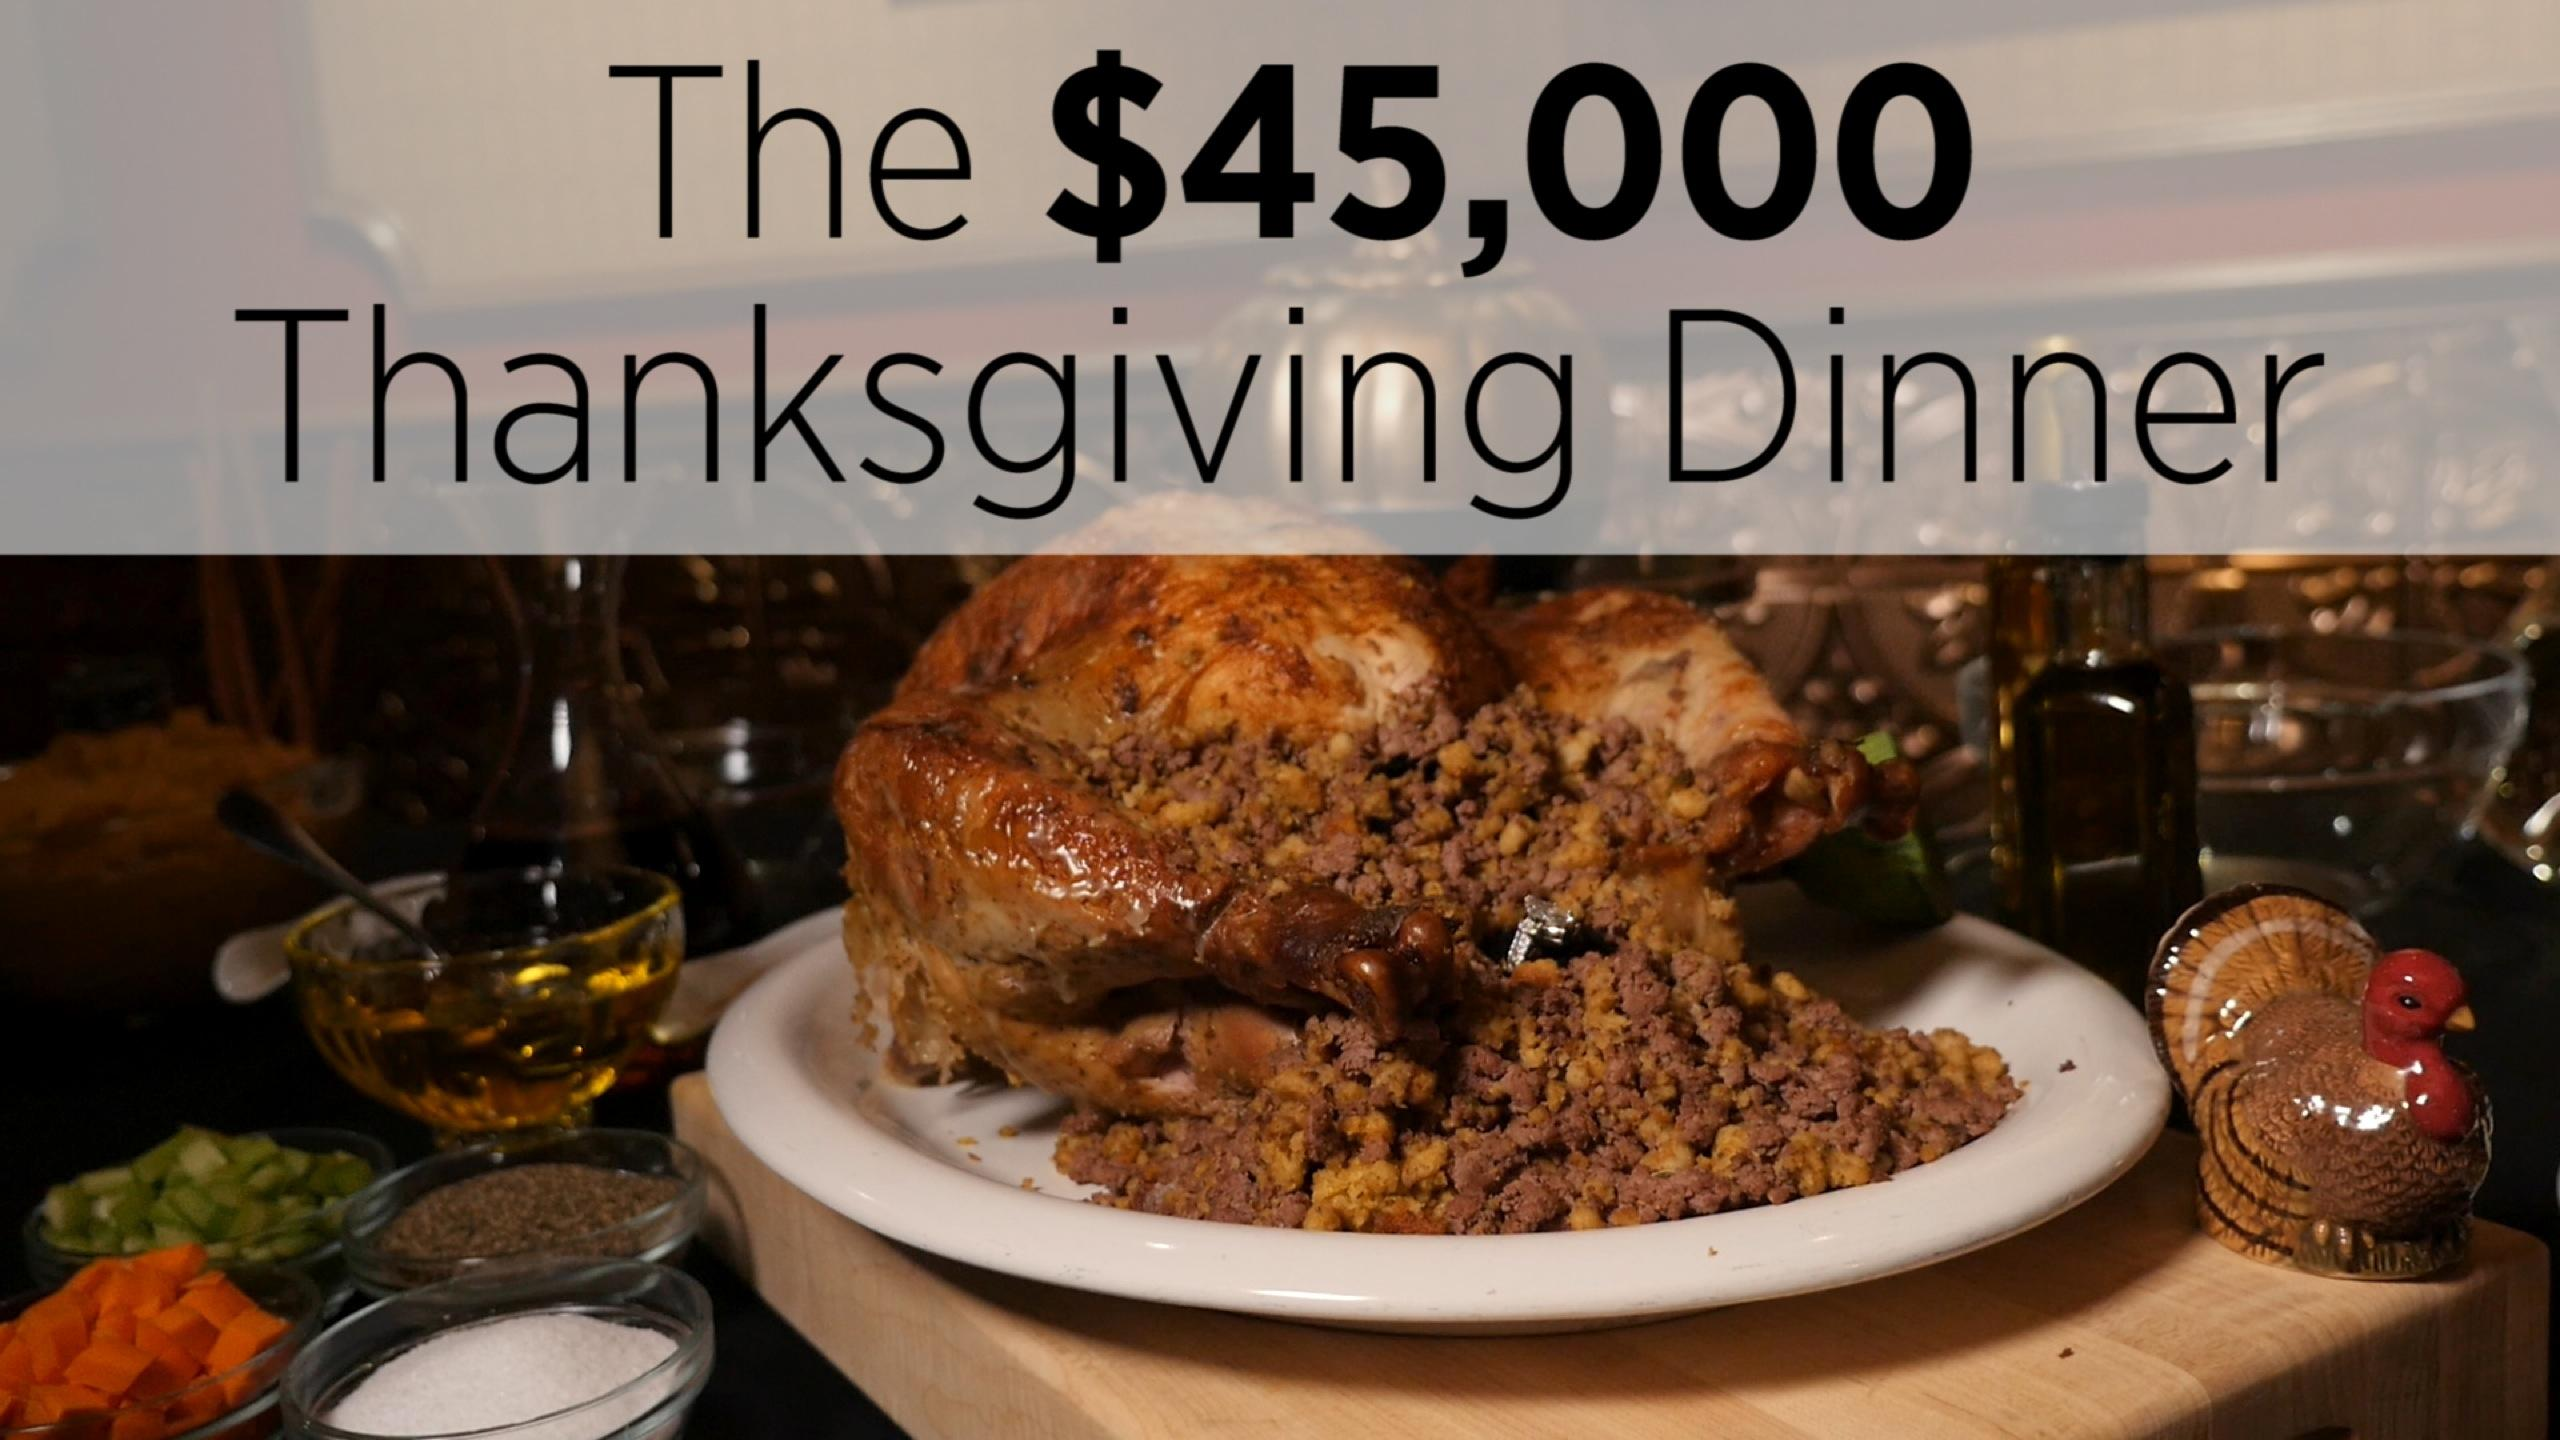 What Does A $45K Thanksgiving Dinner Look Like?